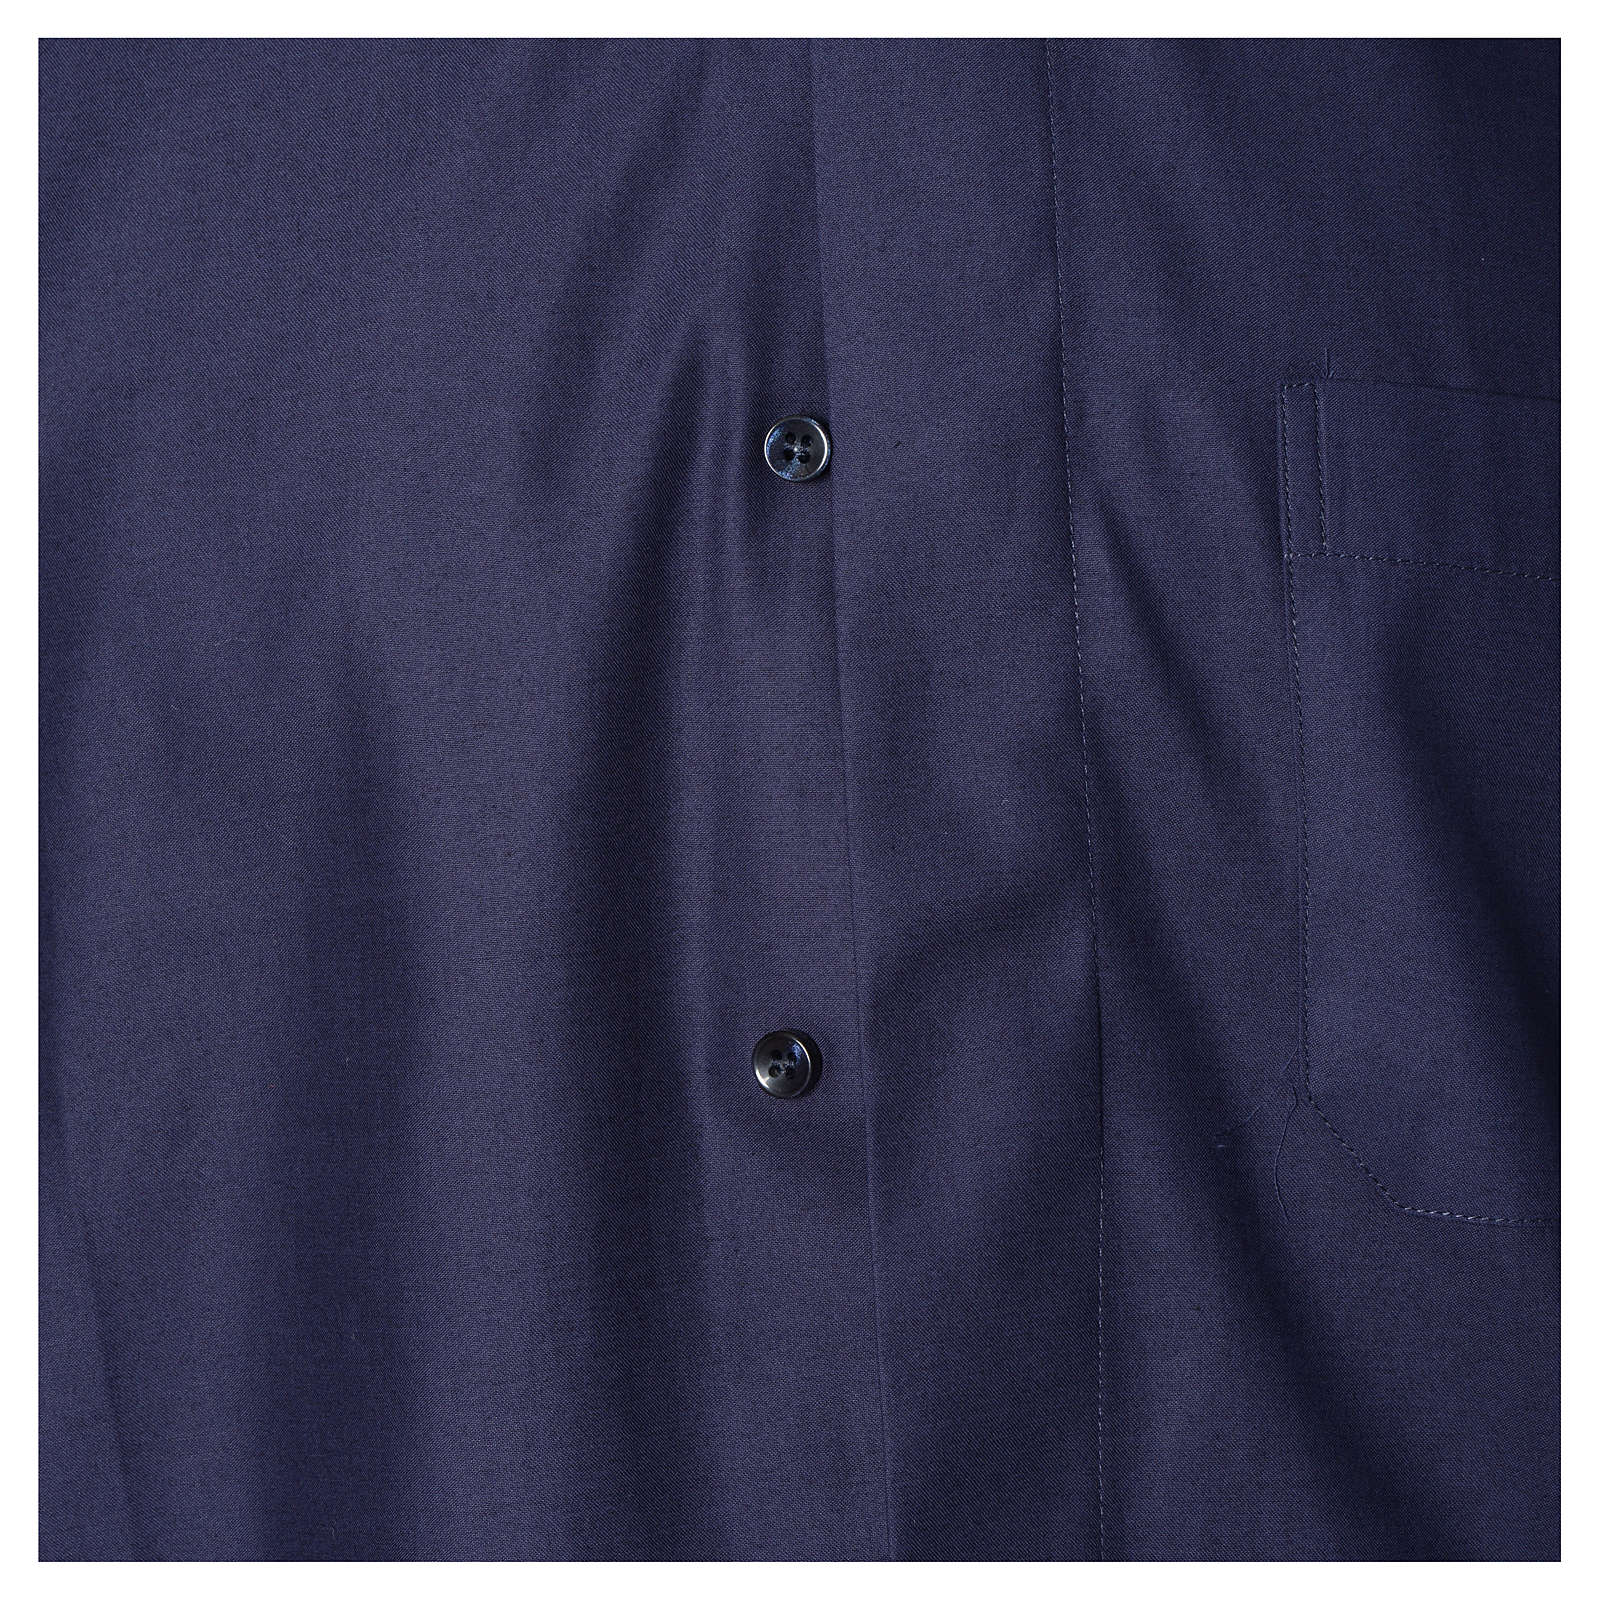 Short sleeves clerical shirt sleeves, blue cotton and polyester 4